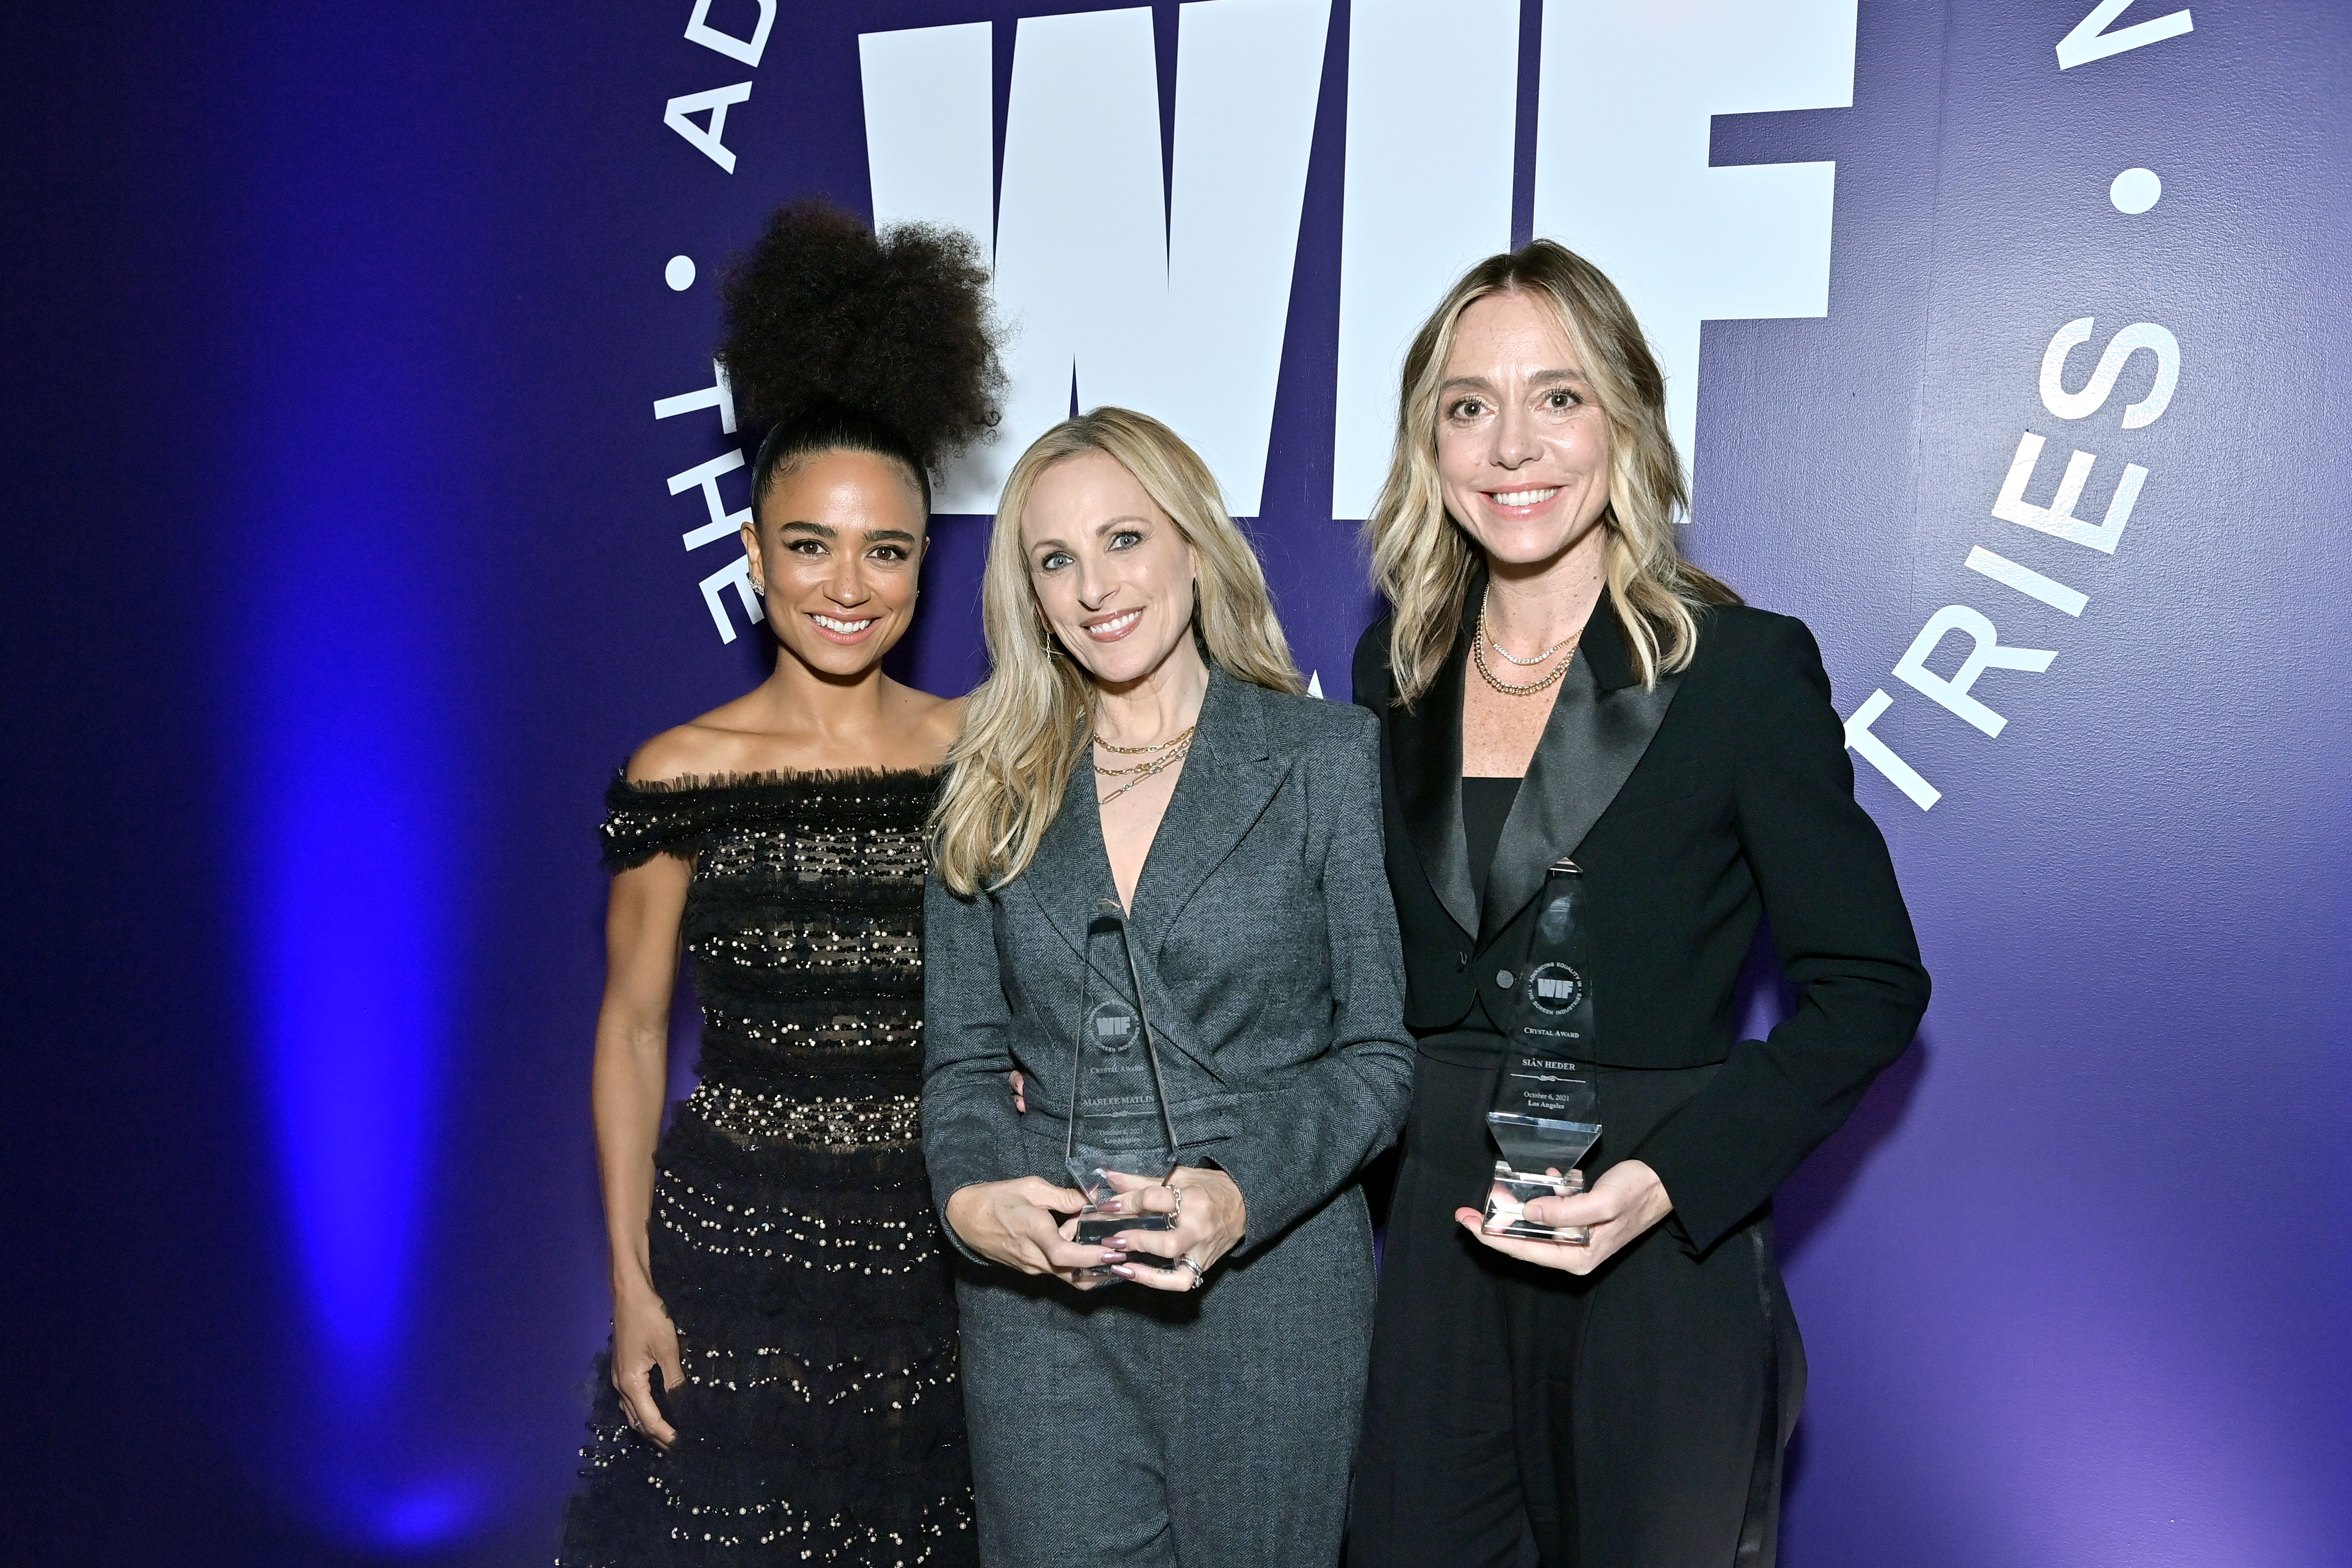 LOS ANGELES, CALIFORNIA - OCTOBER 06: (L-R) Lauren Ridloff, and Crystal Award Honorees Marlee Matlin and Siân Heder, wearing Max Mara, pose with their awards during the Women in Film Honors: Trailblazers of the New Normal sponsored by Max Mara, ShivHans Pictures, and Lexus at the Academy Museum of Motion Pictures on October 06, 2021 in Los Angeles, California. (Photo by Stefanie Keenan/Getty Images for Women In Film (WIF))